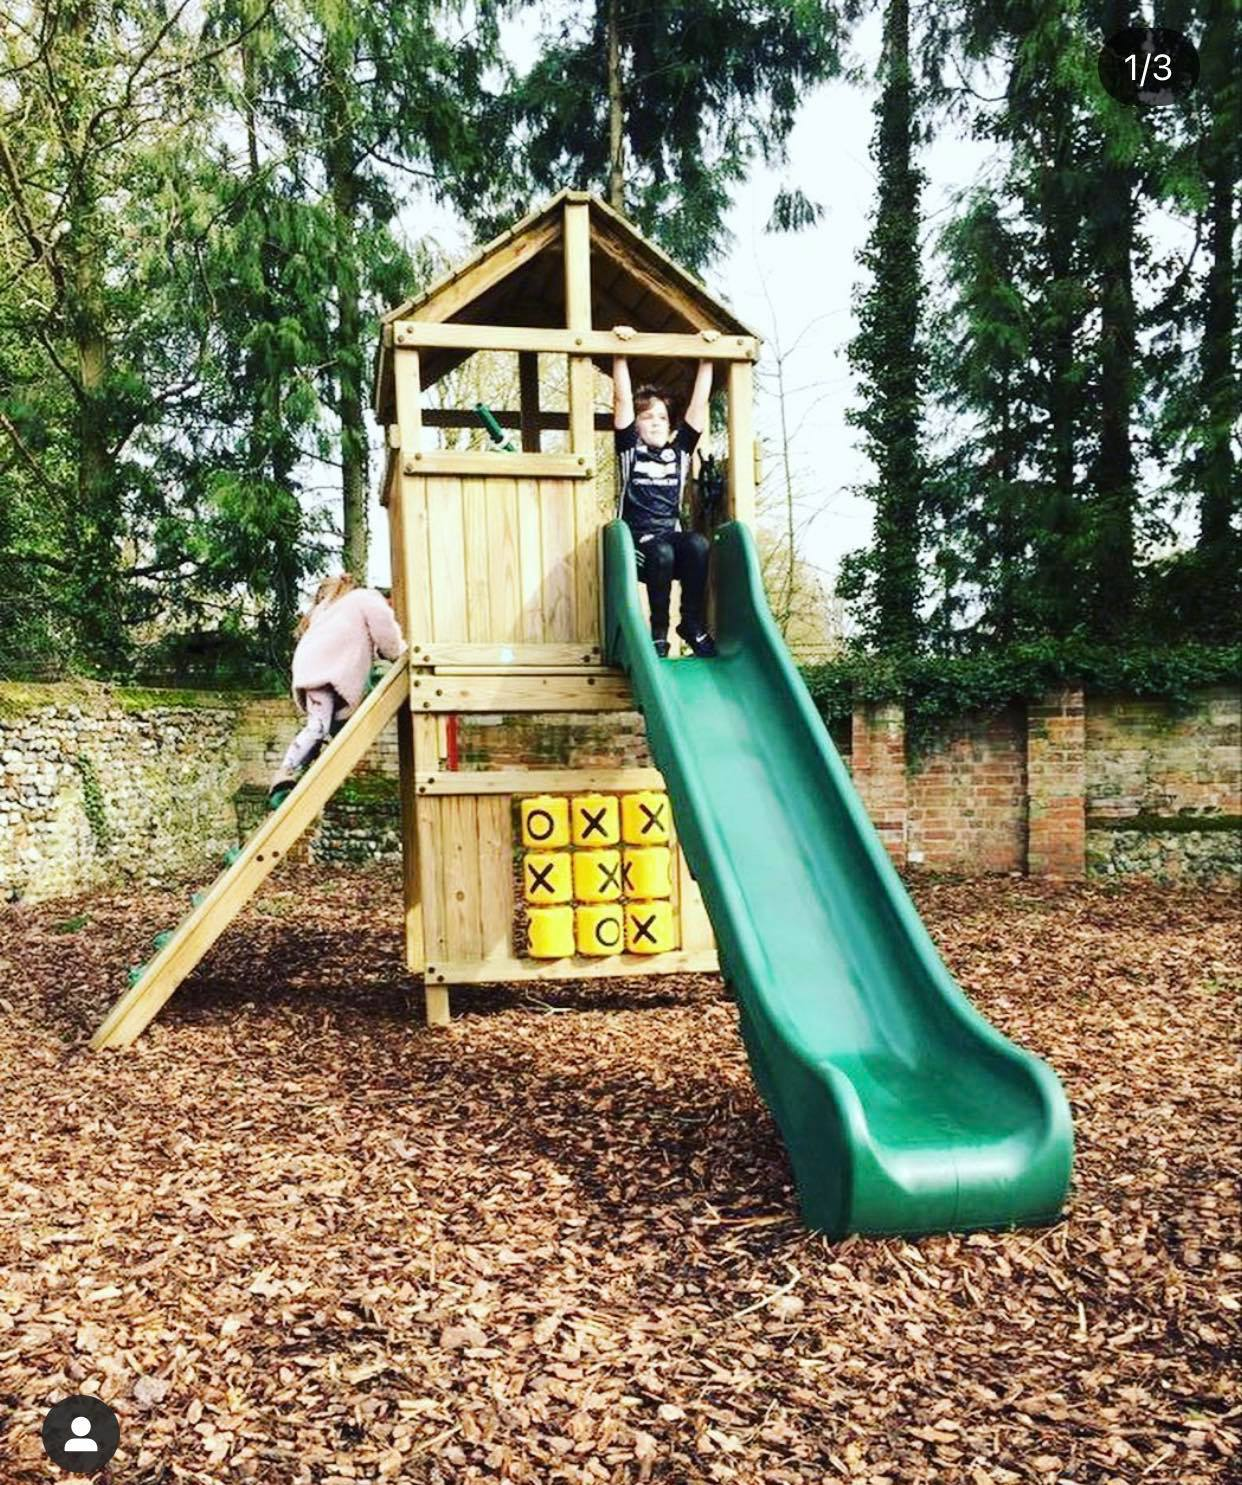 The Hare Long Melford, Family Friendly Places To East out in Sudbury, A suffolk mum blog